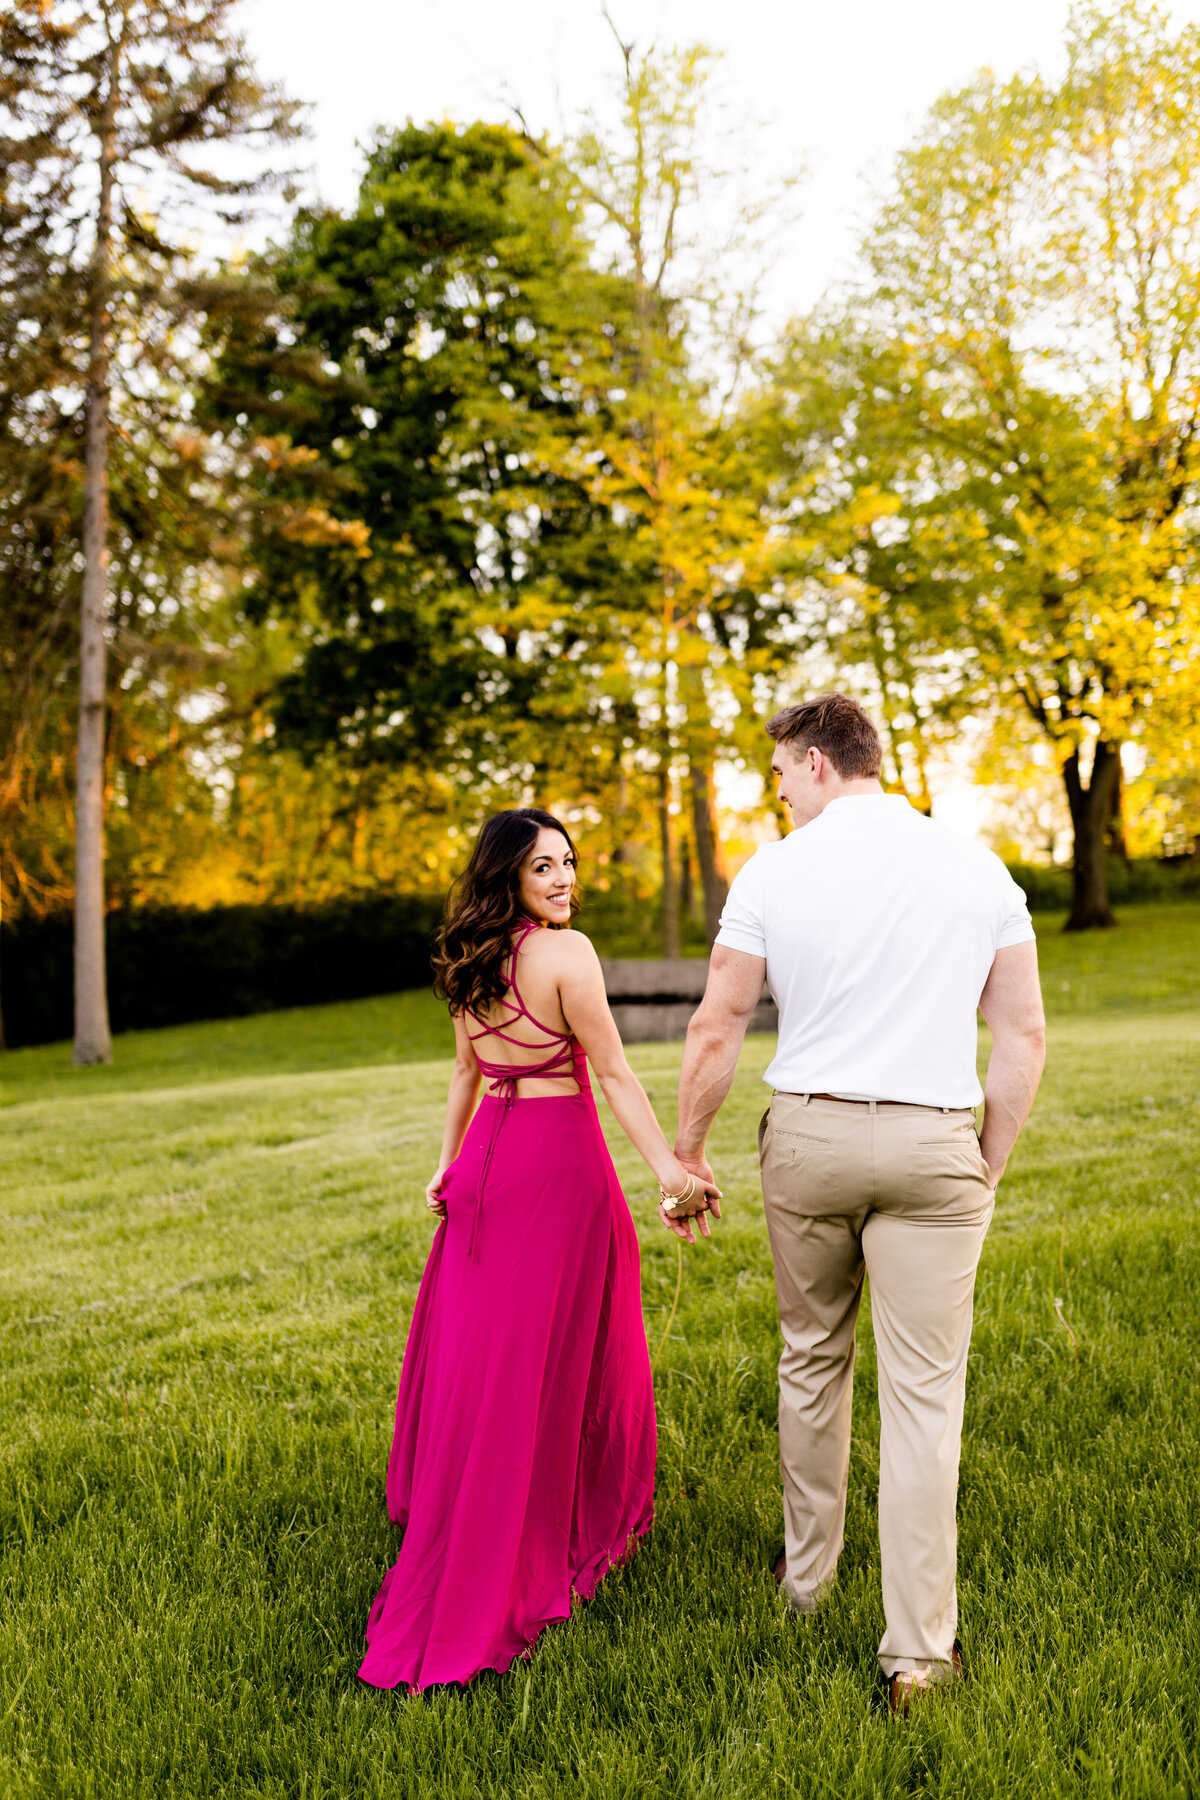 Caitlin and Luke Photography Wedding Engagement Luxury Illinois Destination Colorful Bright Joyful Cheerful Photographer 2481